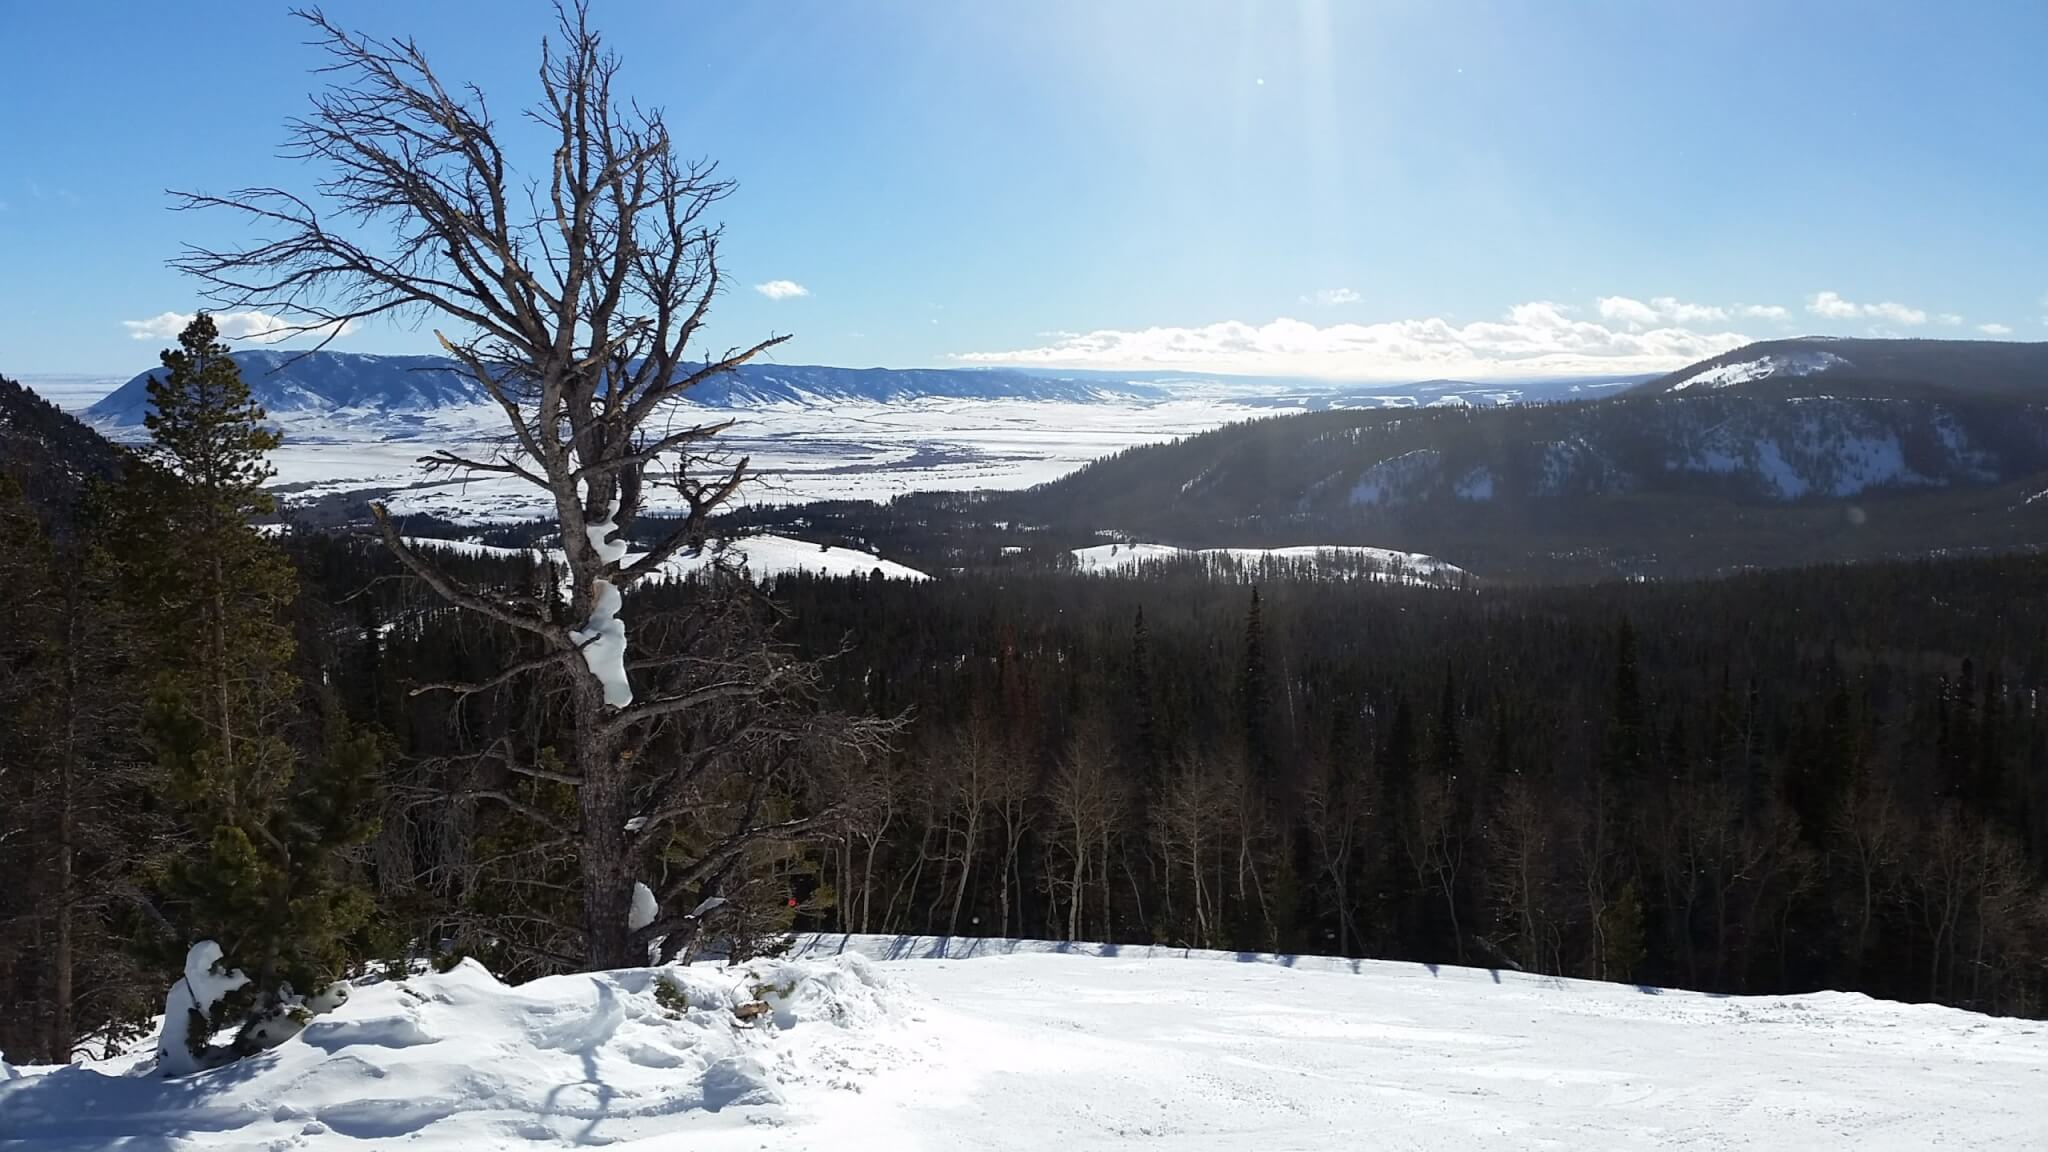 Gorgeous vista from Snowy Range Ski Area one of the best small ski resorts in the US